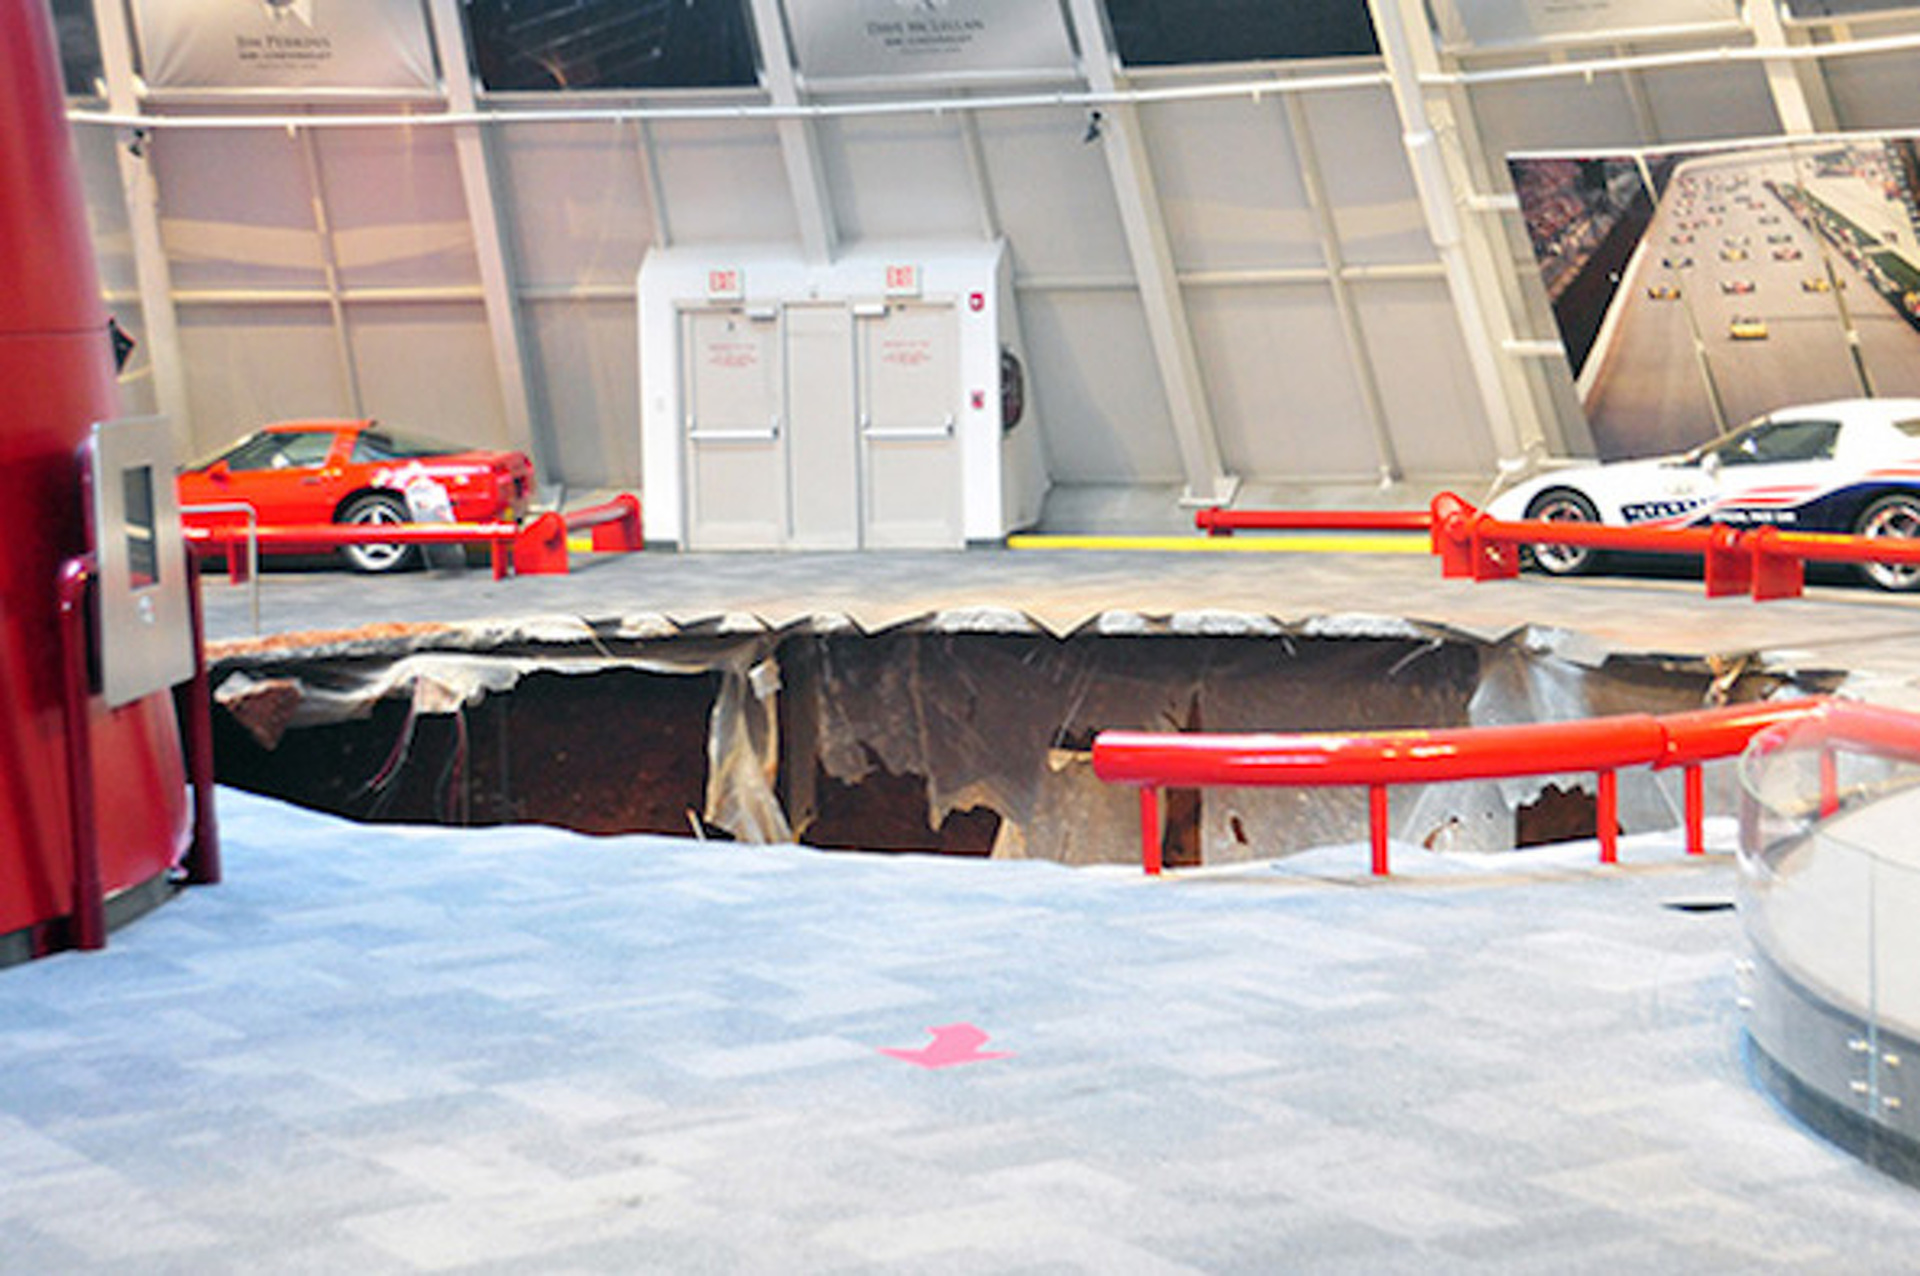 National Corvette Museum Swallowed Up by Sinkhole, 8 Cars Damaged